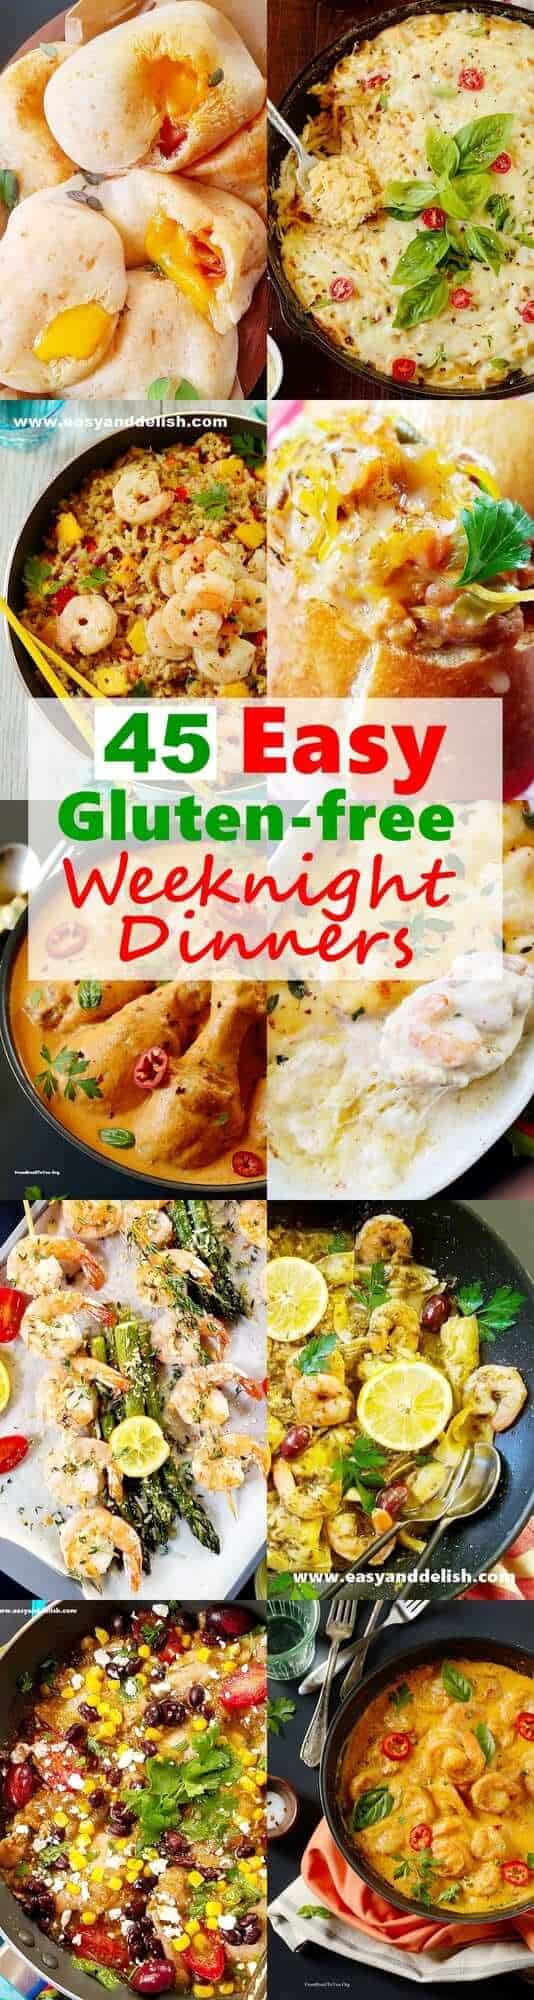 45 Easy Gluten-Free Weeknight Dinners for the Family - Easy and Delish